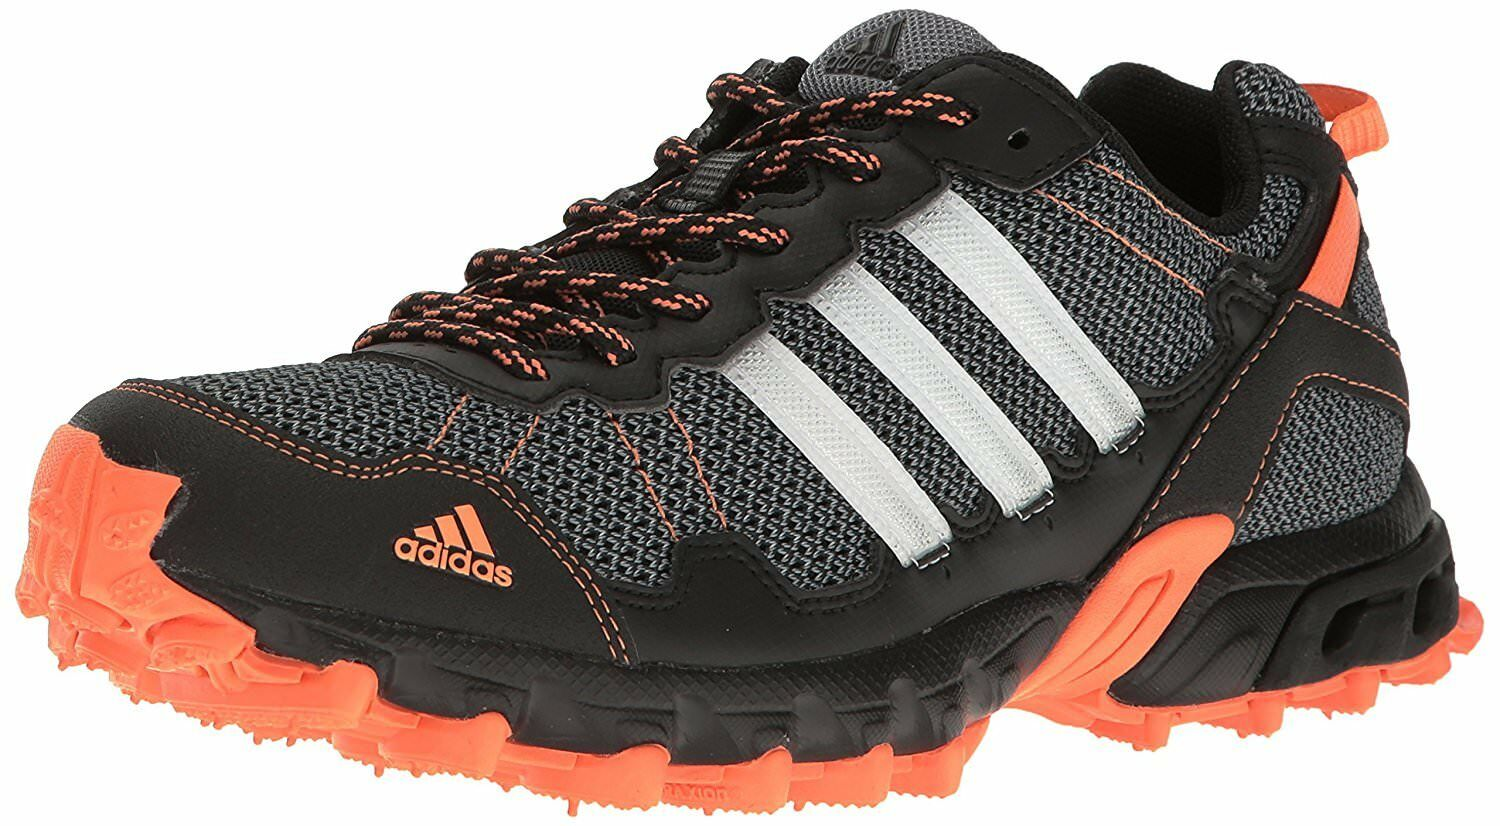 Adidas Performance Performance Performance Women's Rockadia W Trail Runner shoes, 4 colors 476acc